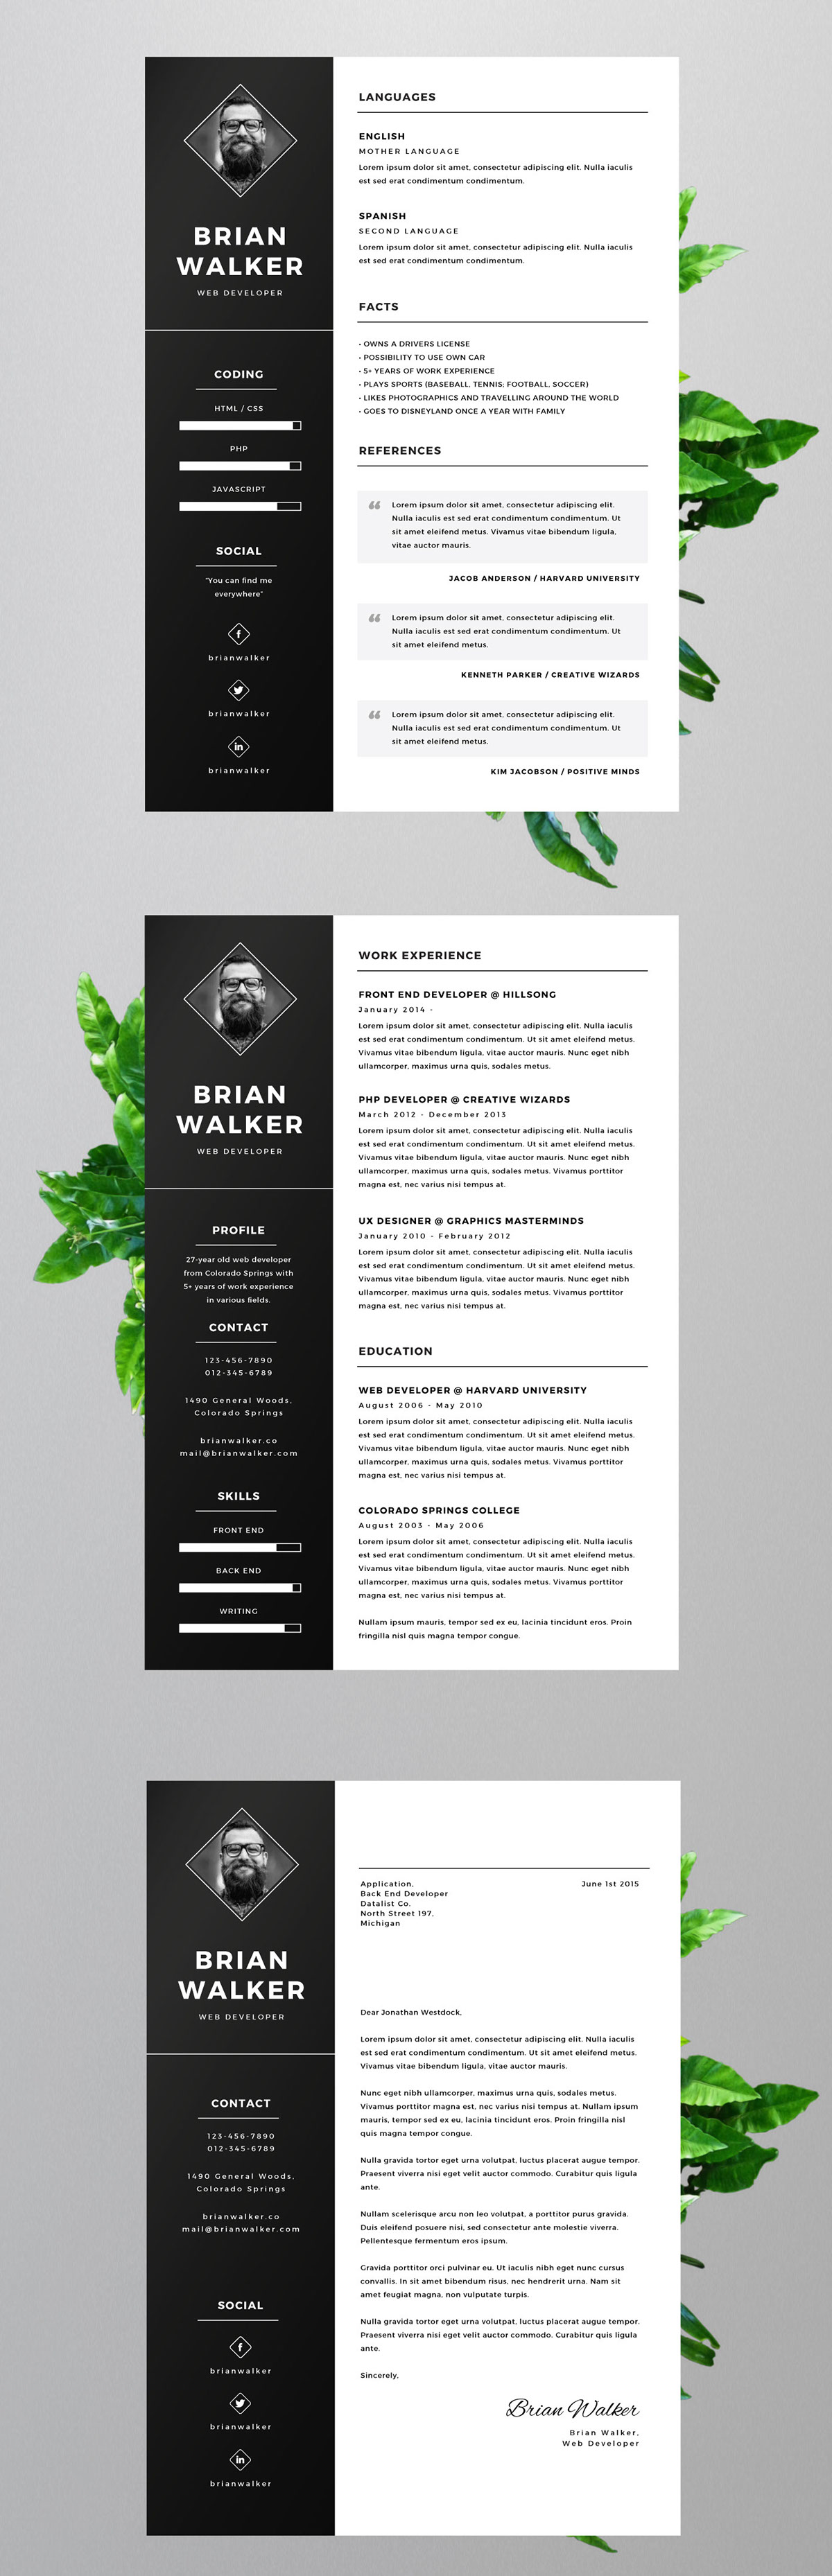 free resume template for word photoshop illustrator on